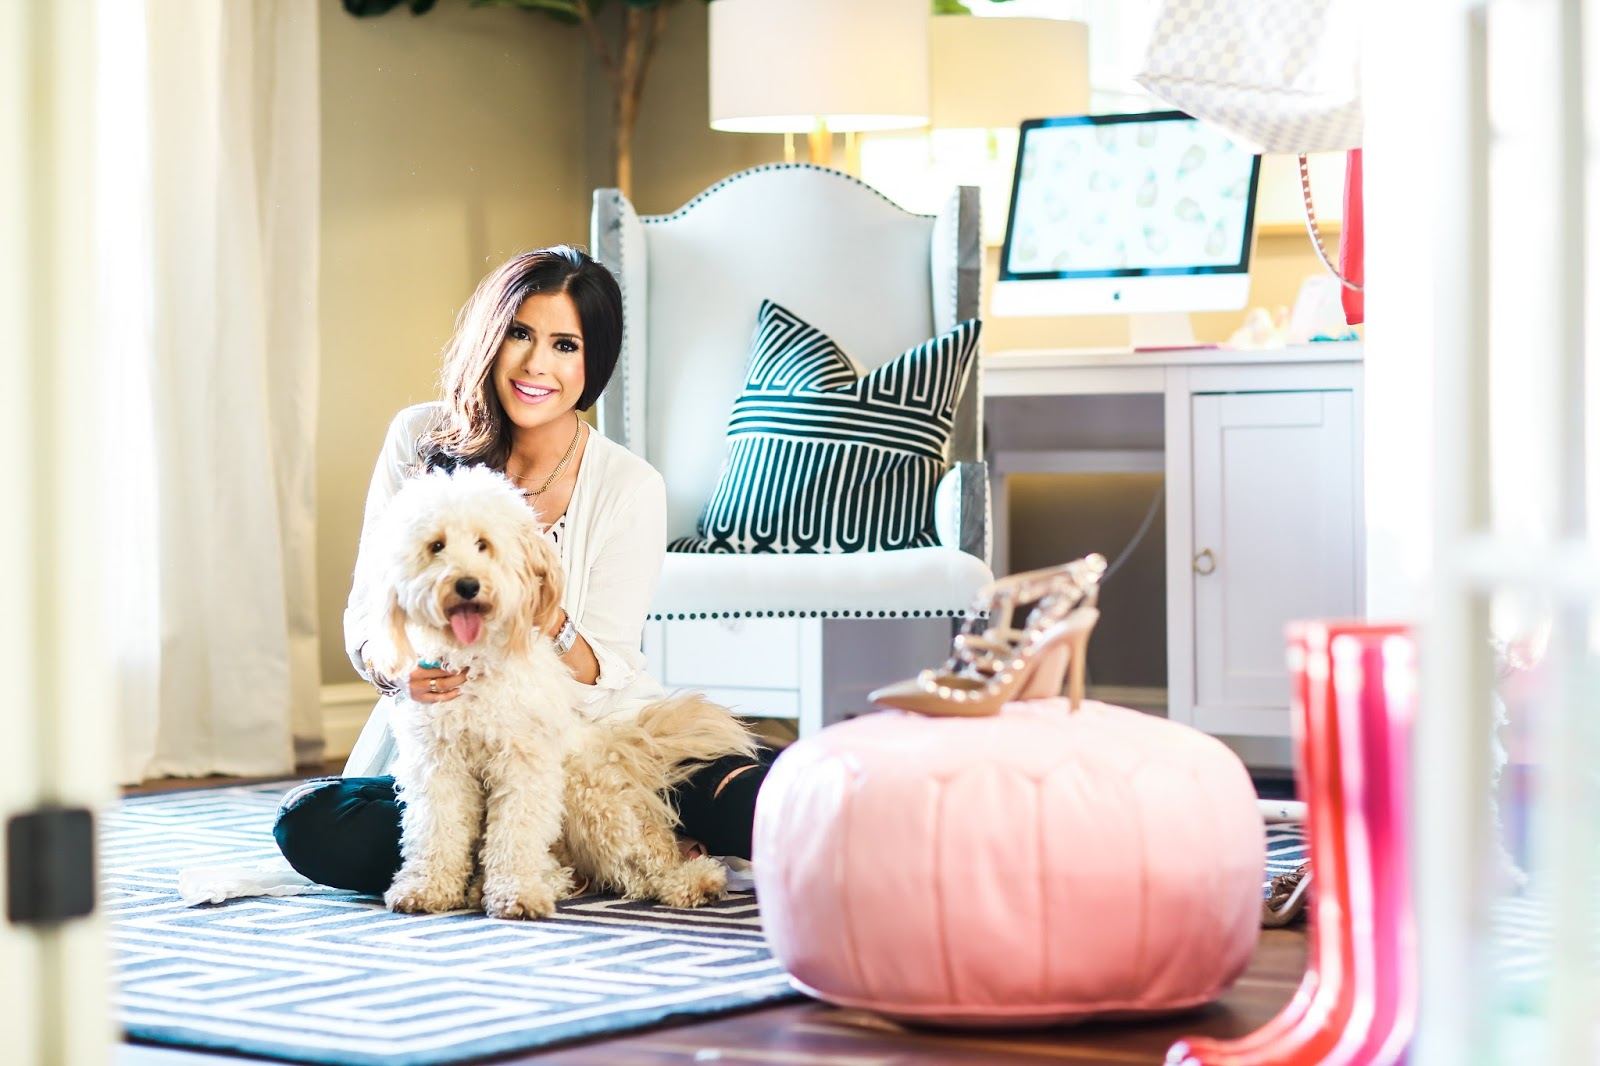 home office tour part 1 download image woman home decorating